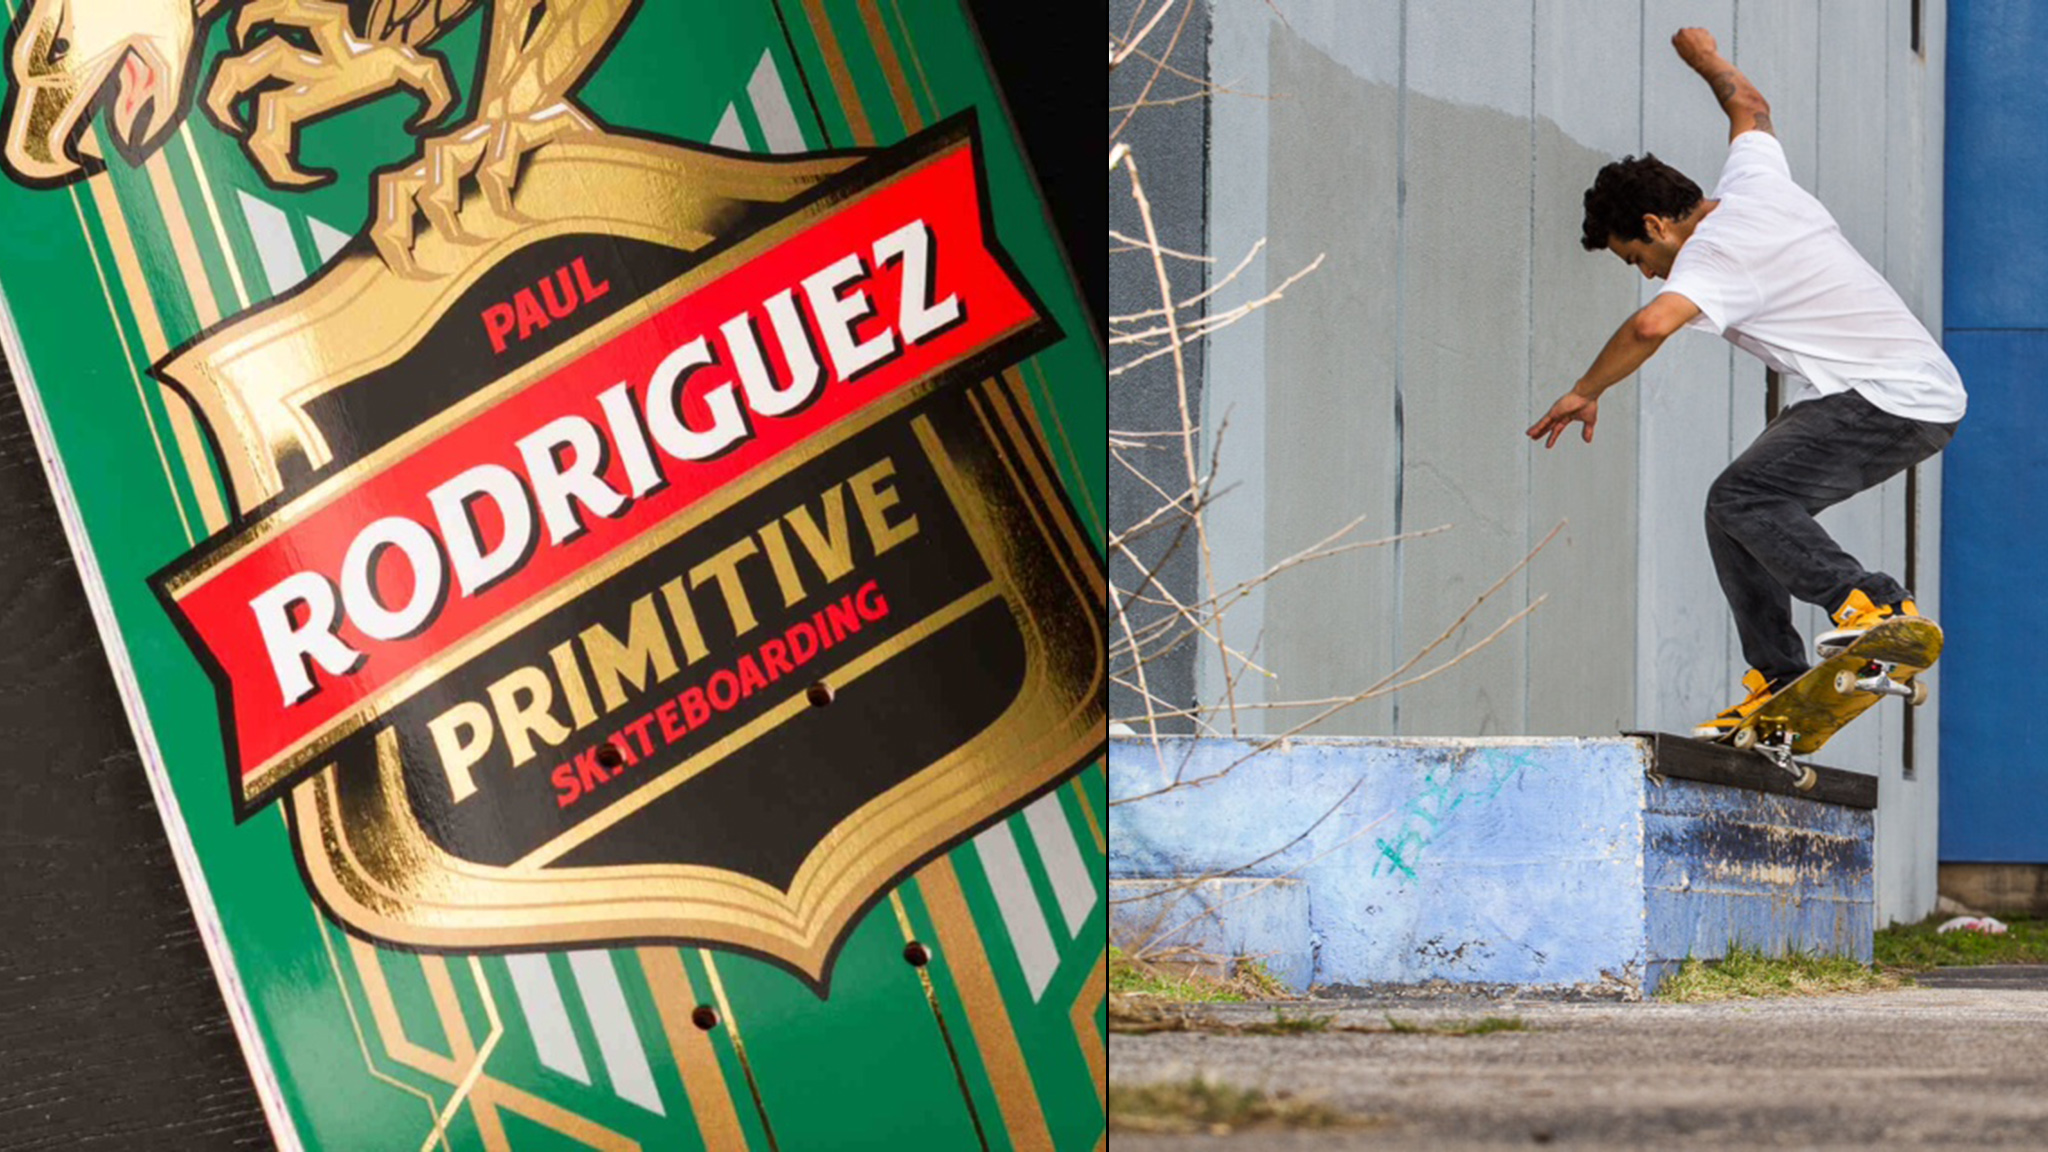 P-Rod's first pro model deck from Primitive Skateboarding (left) and a F/S crooks from P-Rod (right).